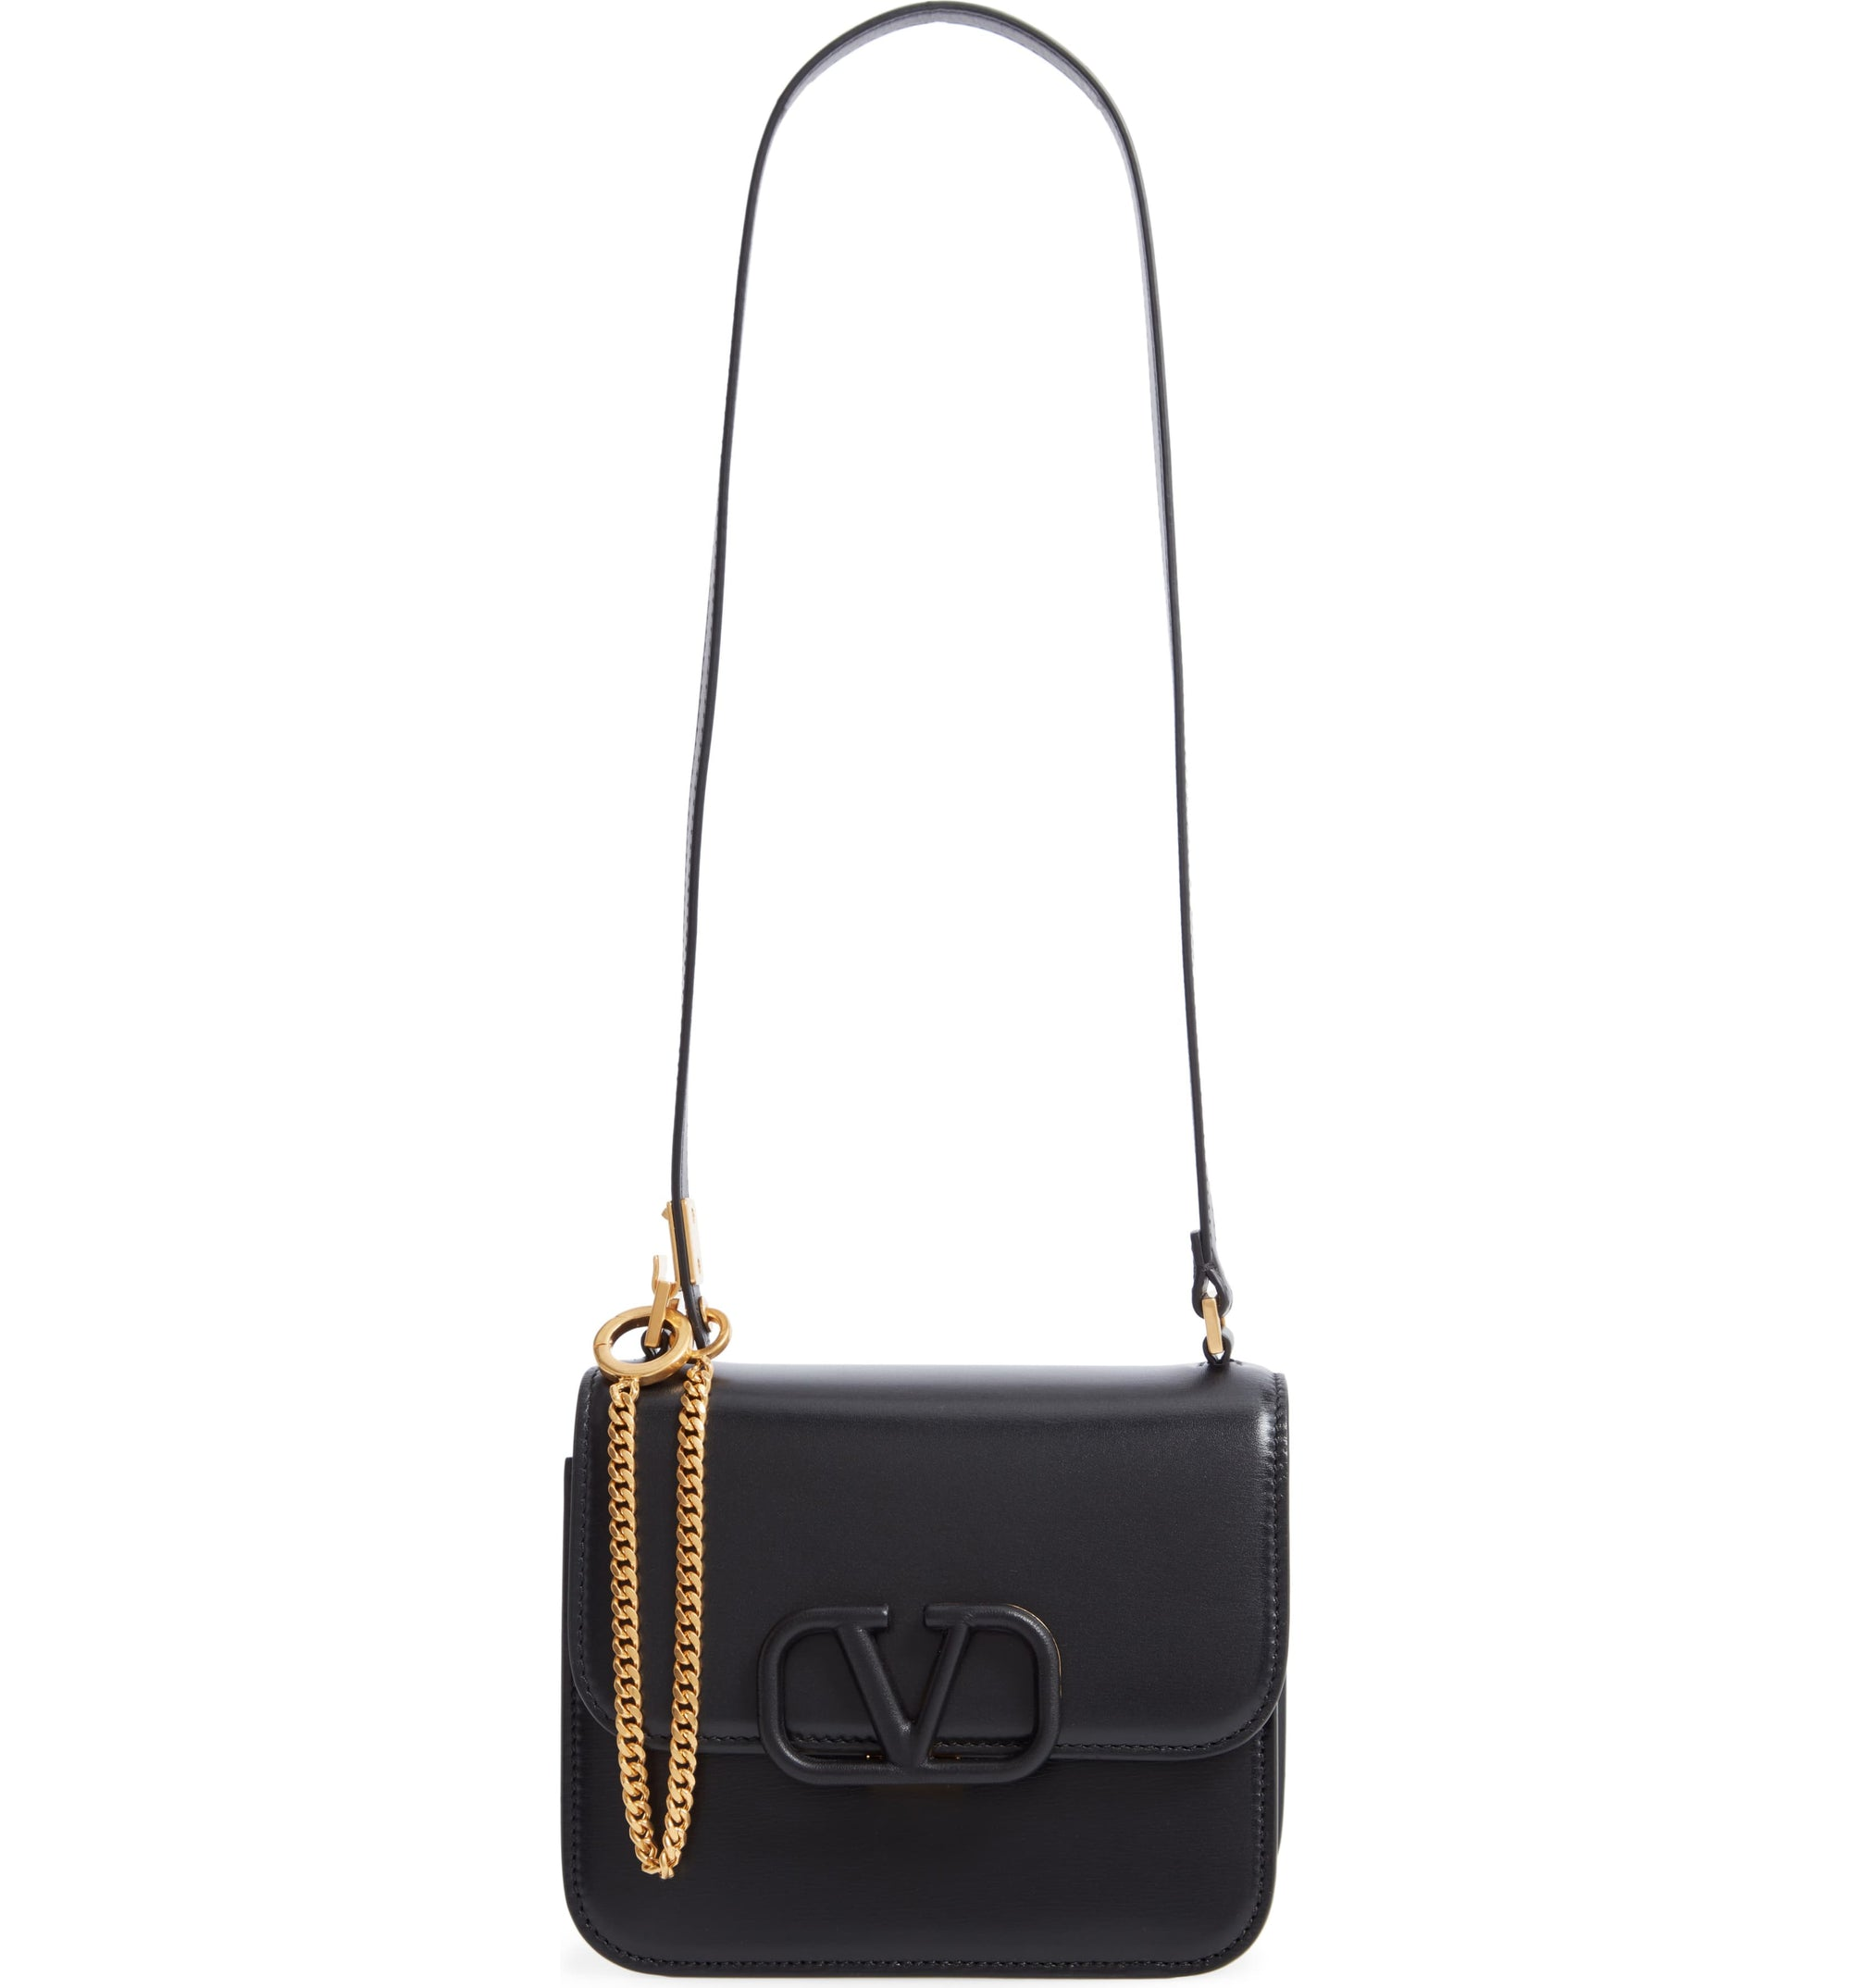 Valentino Garavani Small VSling Shoulder Bag